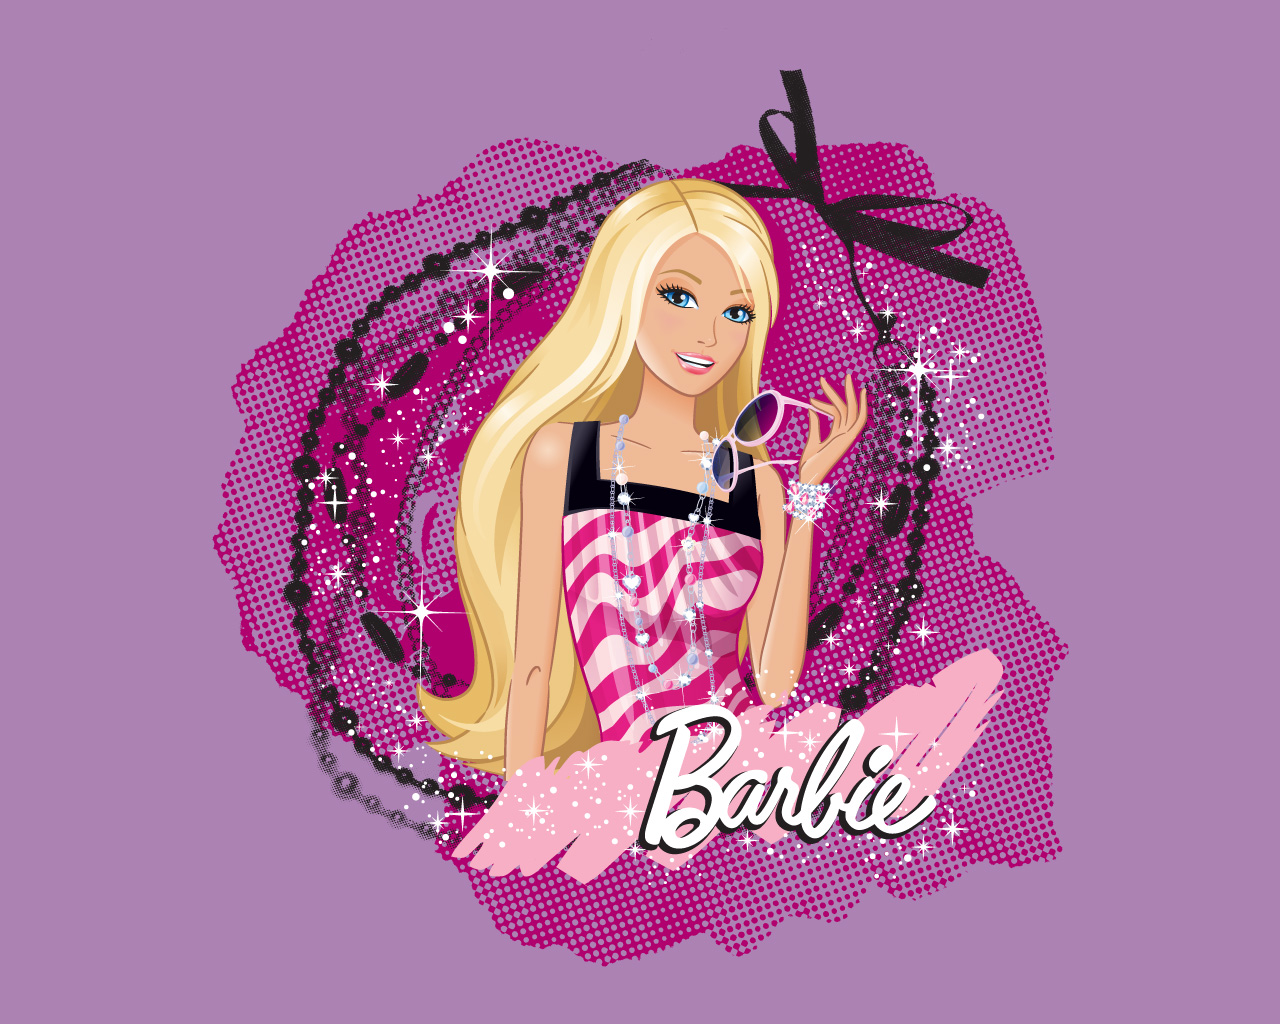 Barbie Wallpaper Hd: Barbie Wallpaper (31795212)